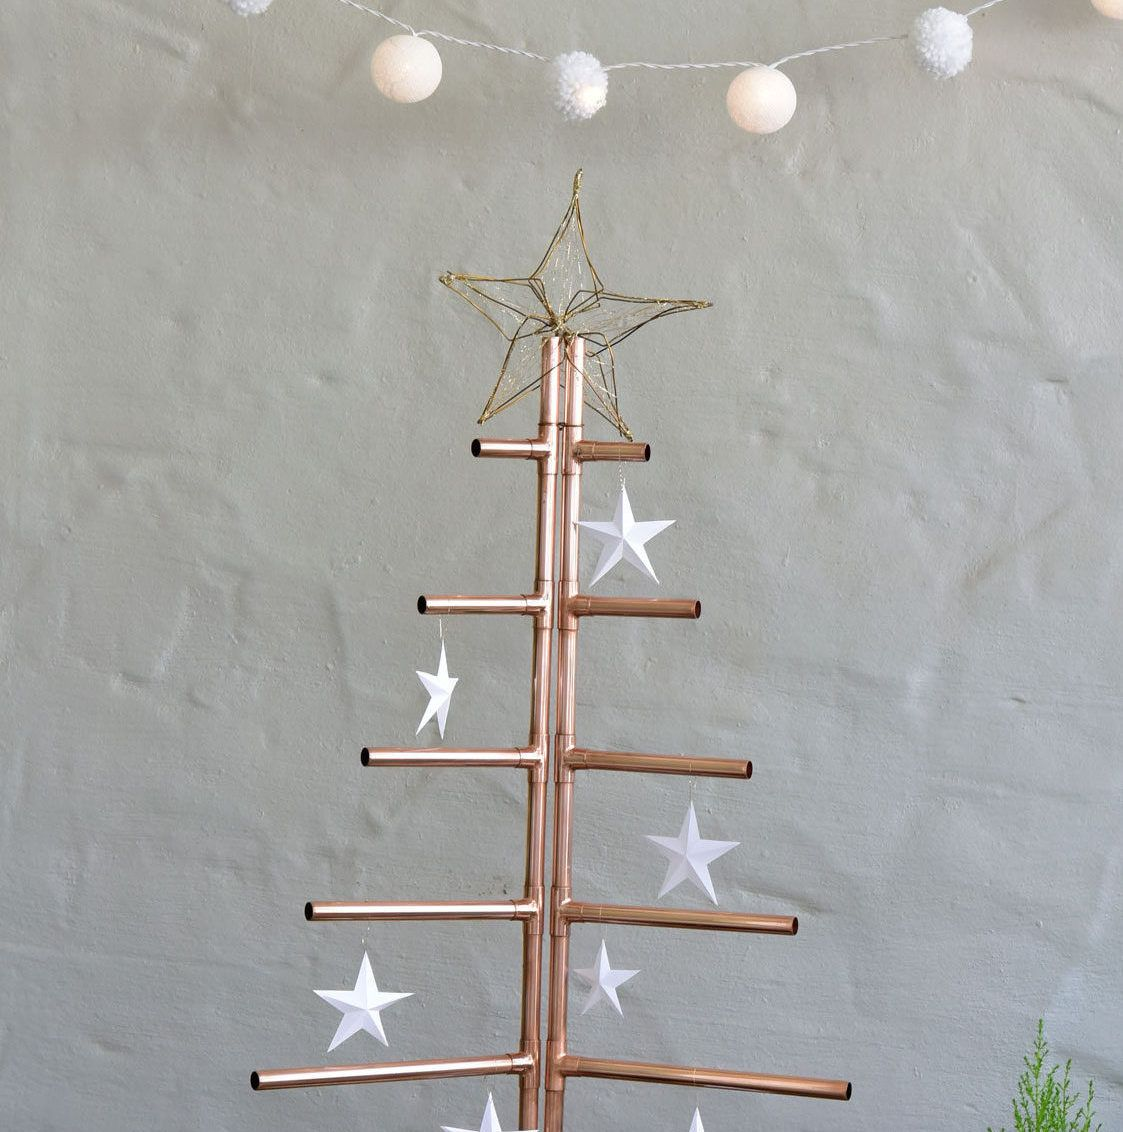 Make Alternative Christmas Tree: Make A Christmas Tree From Copper Piping